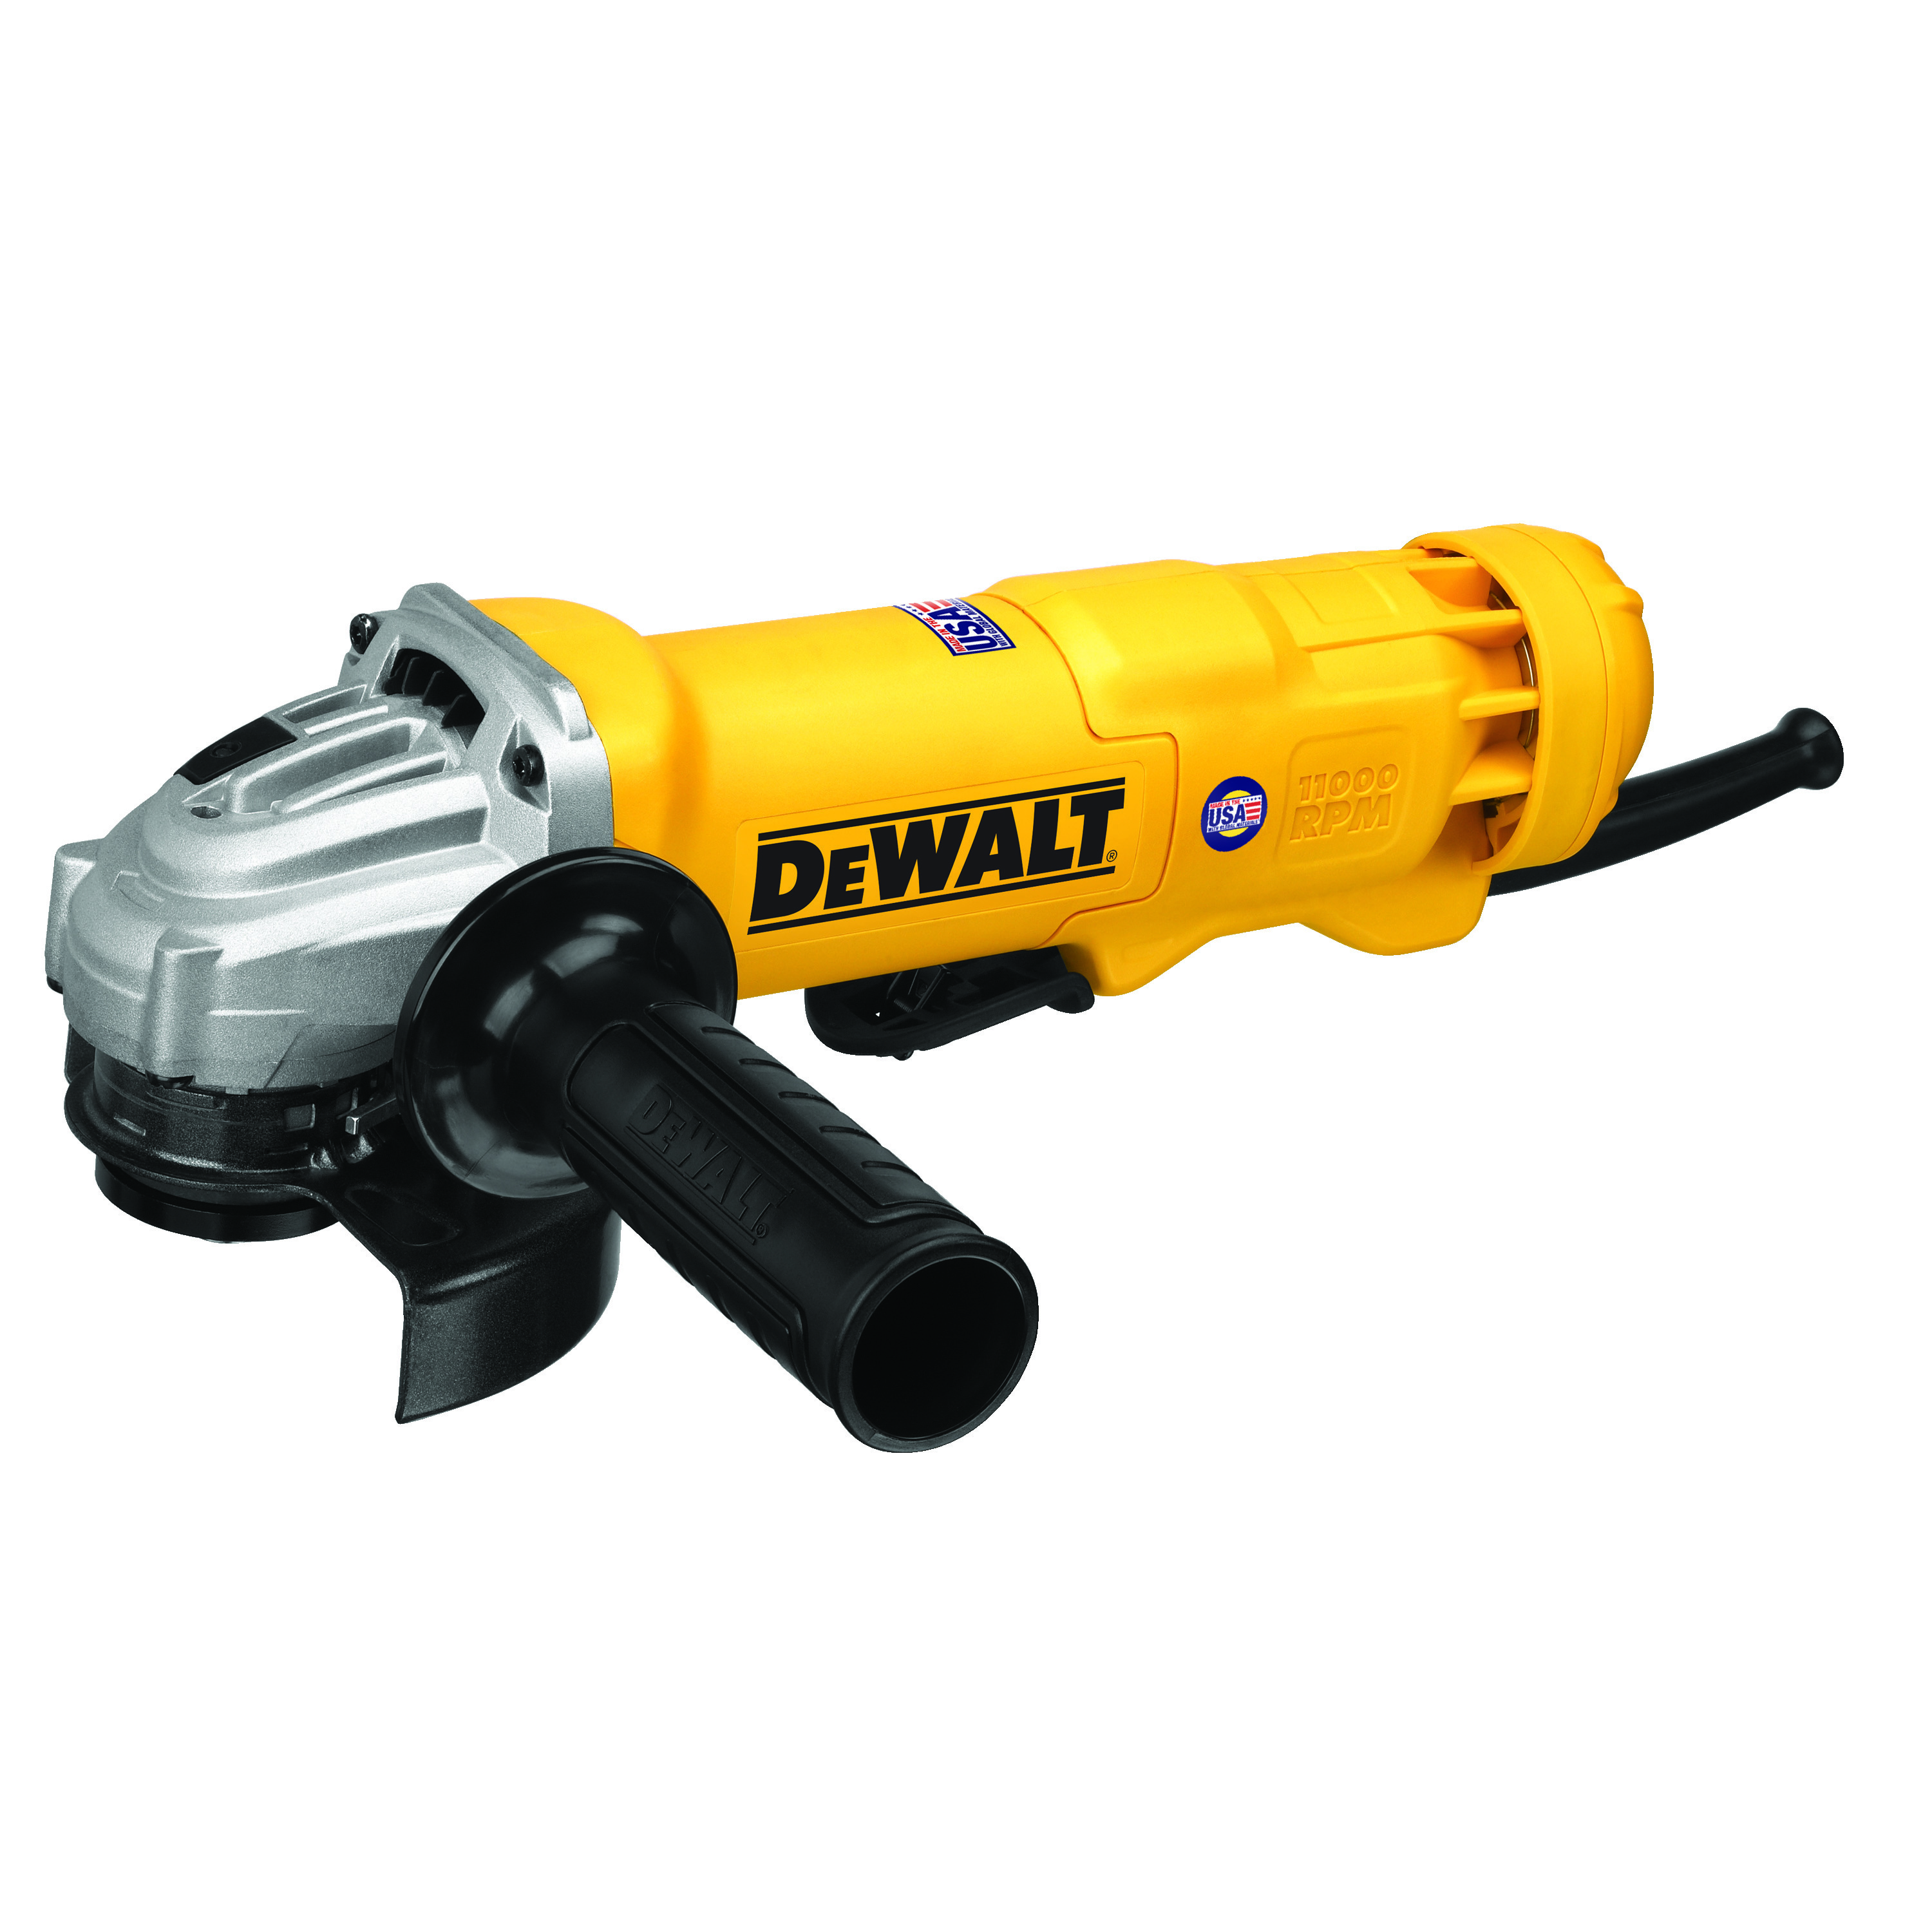 DeWALT® DWE402N Small Angle Grinder, 4-1/2 in Dia Wheel, 5/8-11 Arbor/Shank, 120 VAC, For Wheel: Quick-Change™, Yellow, Yes, Non-Locking Paddle Switch Switch